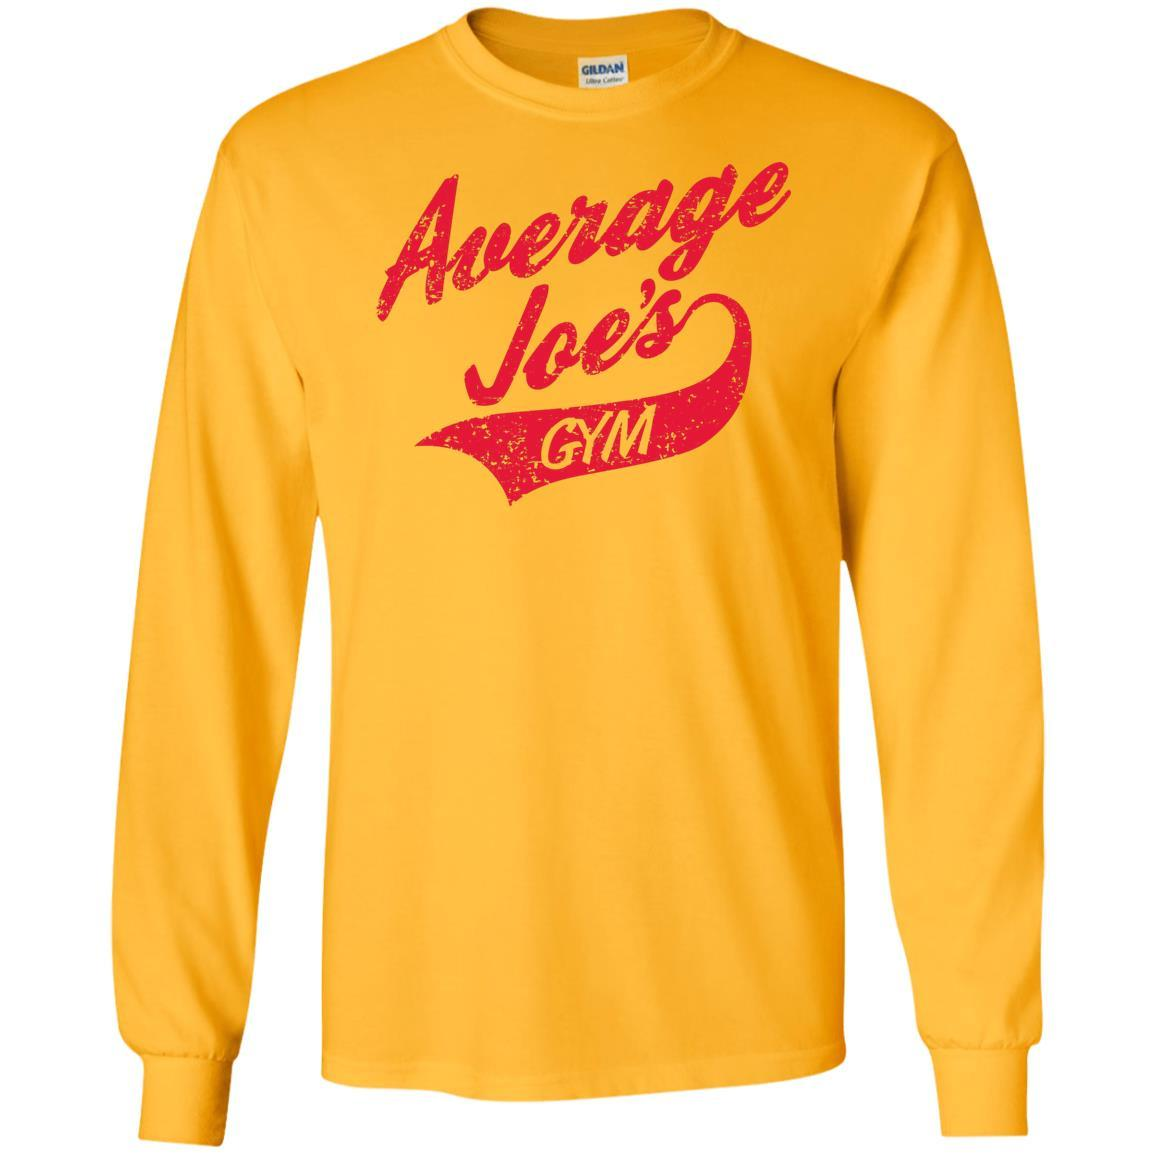 8b0d53bc980 Average Joes Gym Long Sleeve – The Dude s Designs